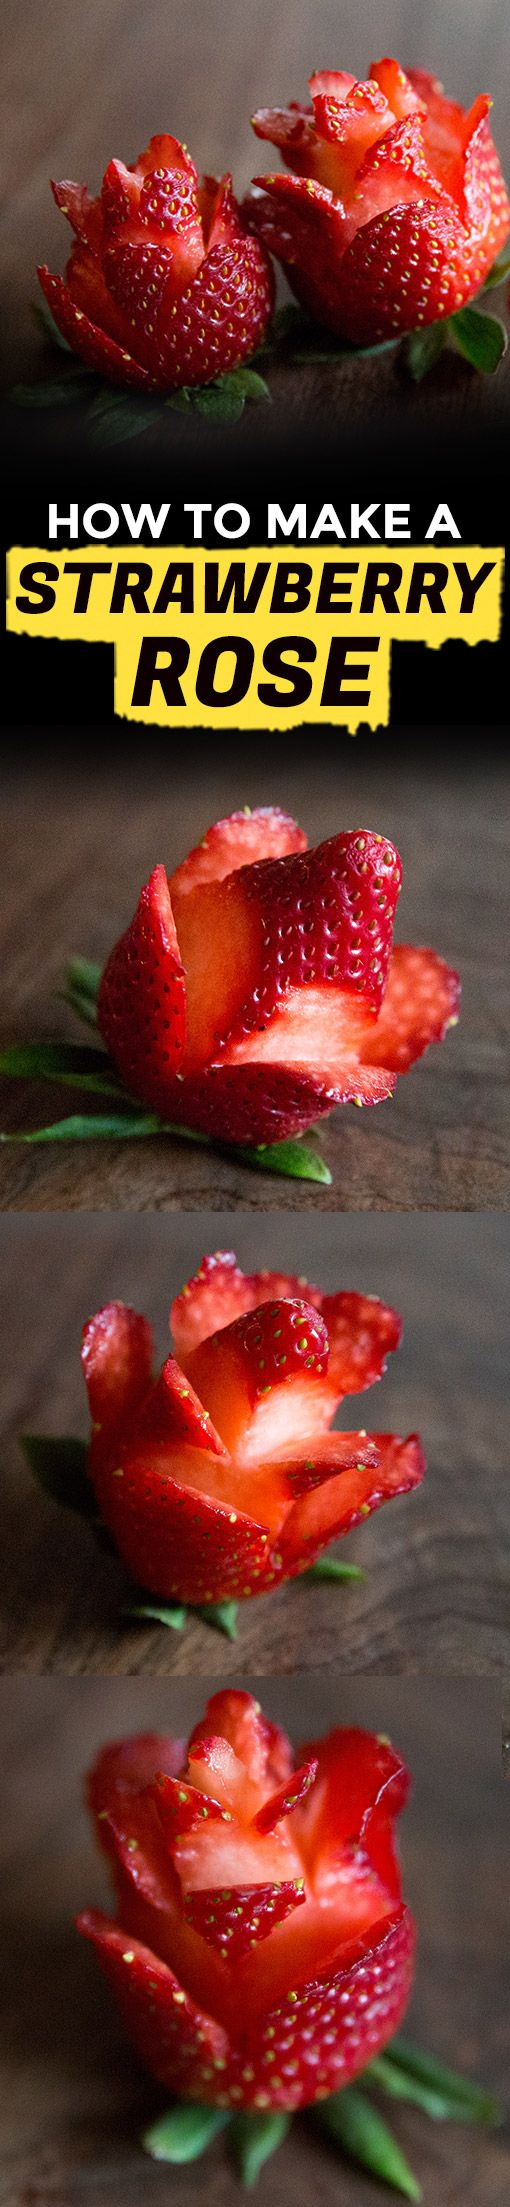 How to Make Strawberry Roses | Extra Crispy